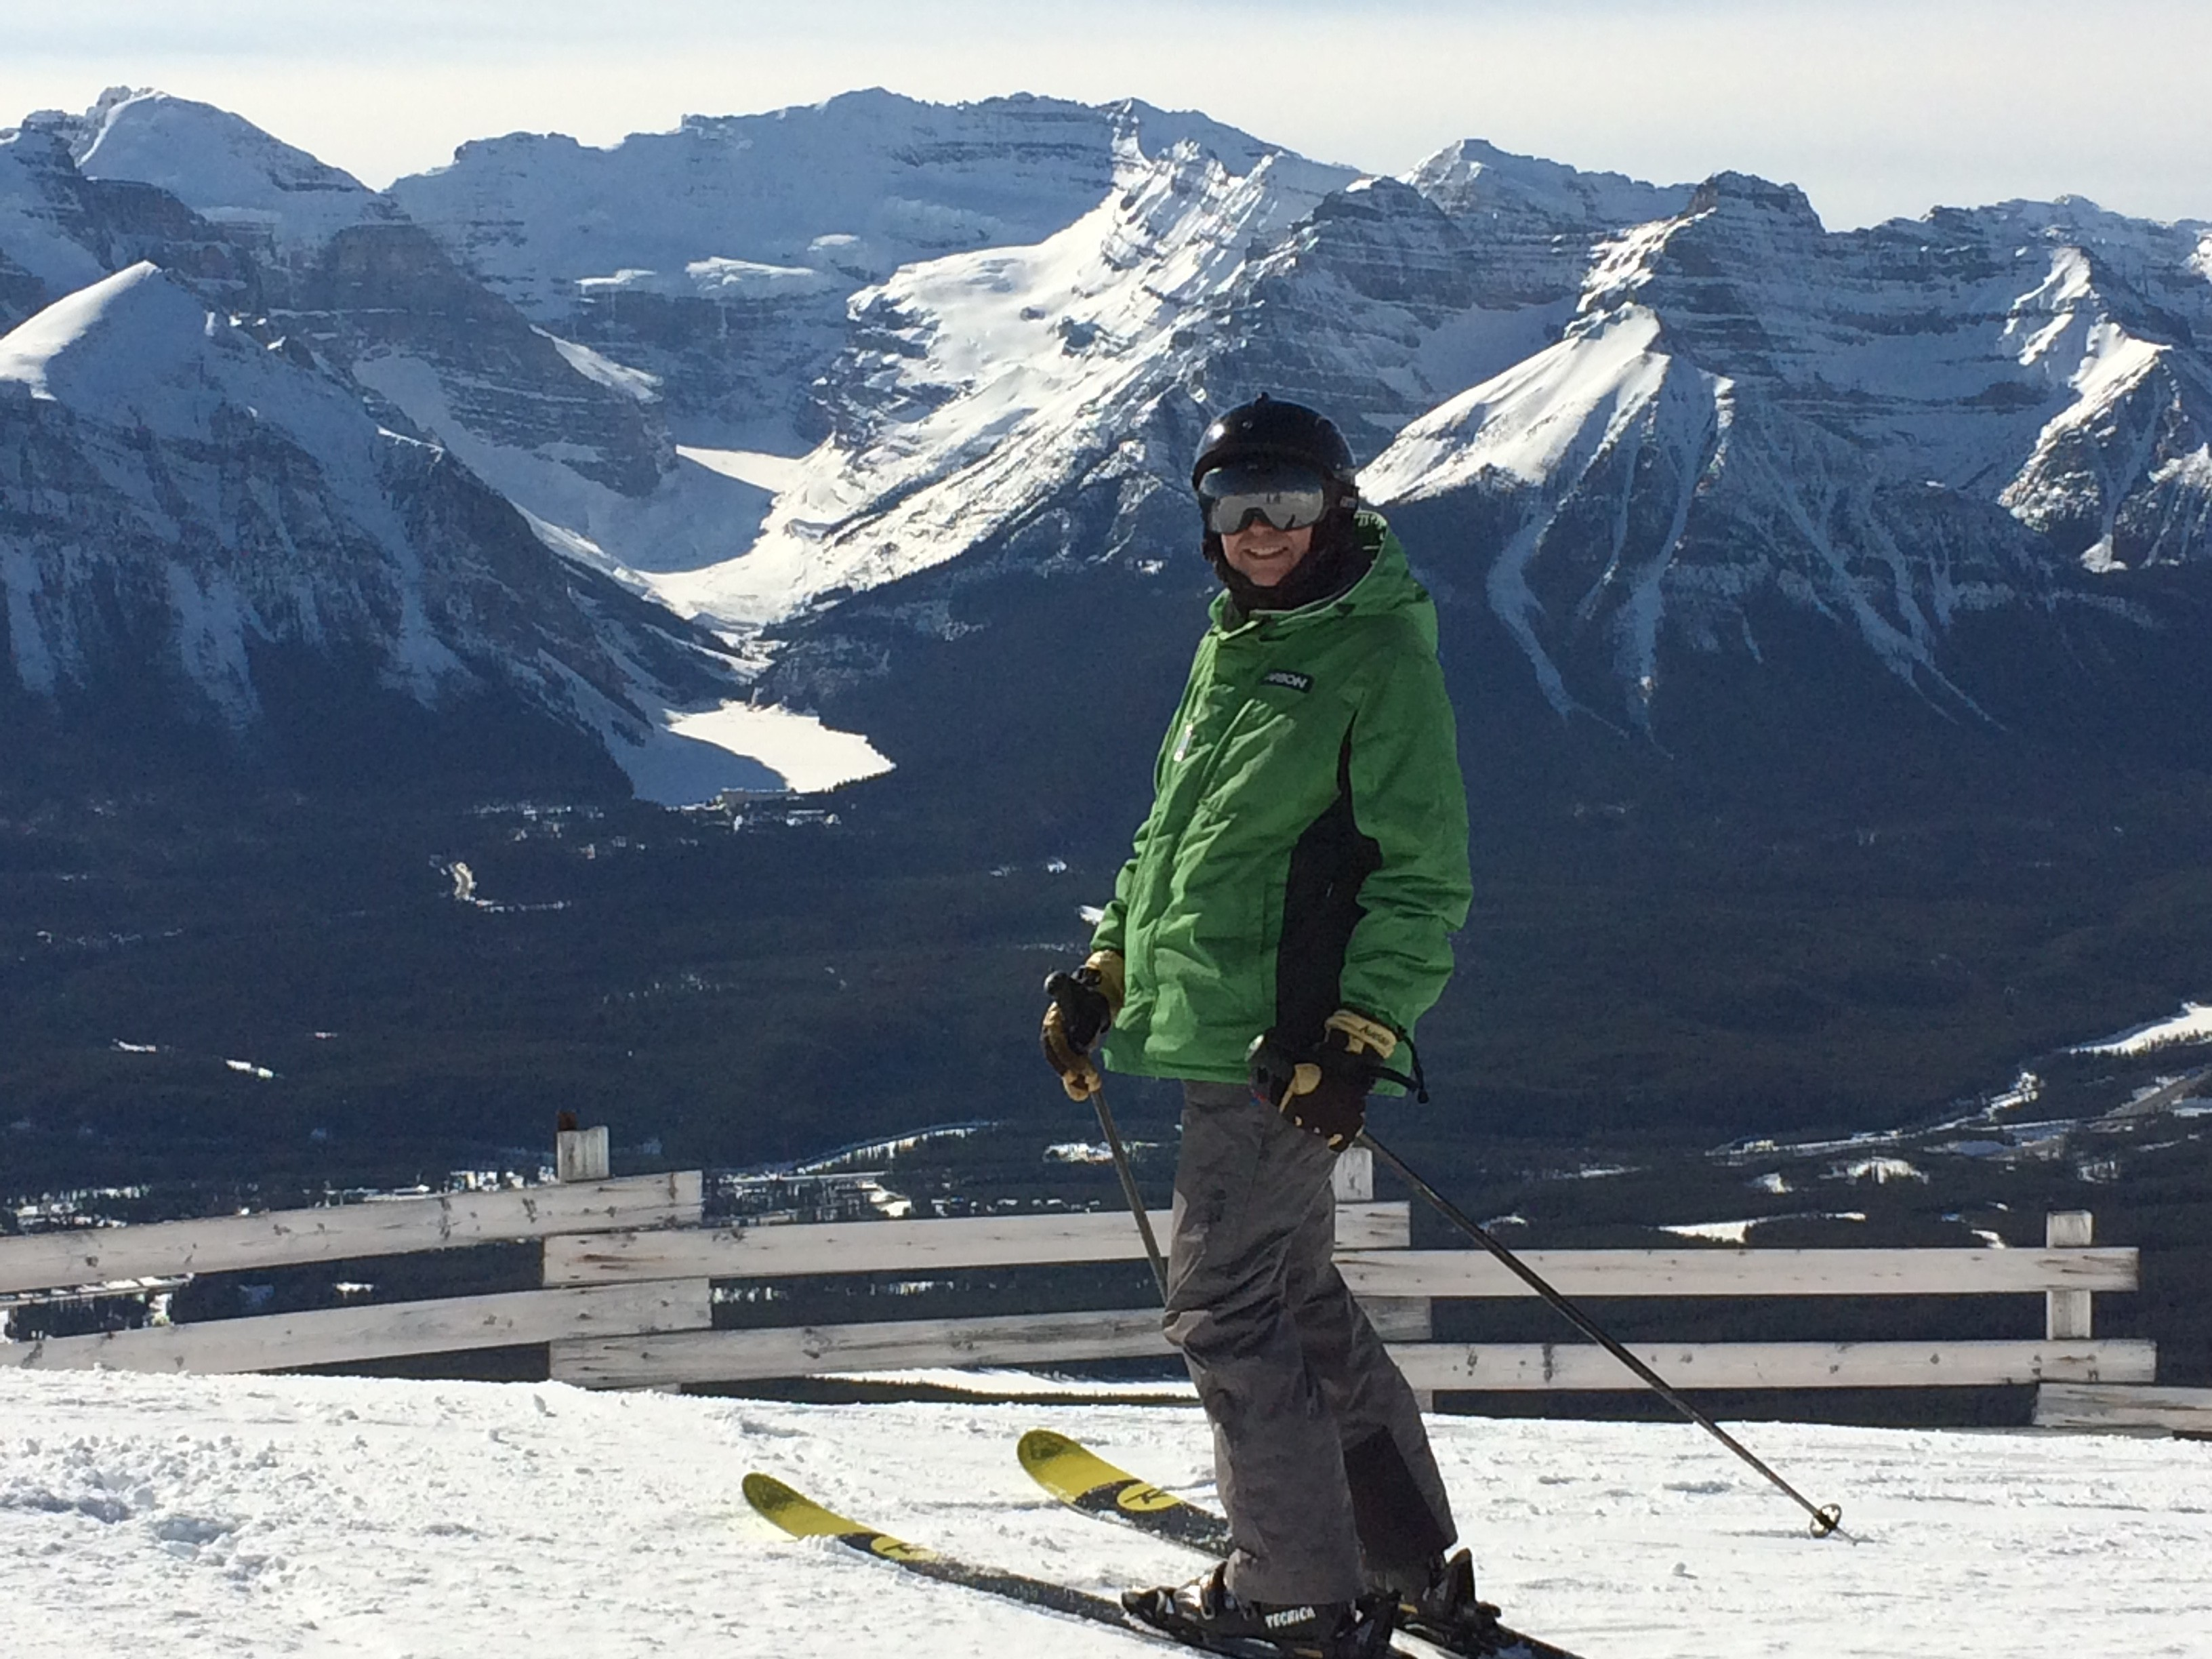 Bill admiring the view at Lake Louise